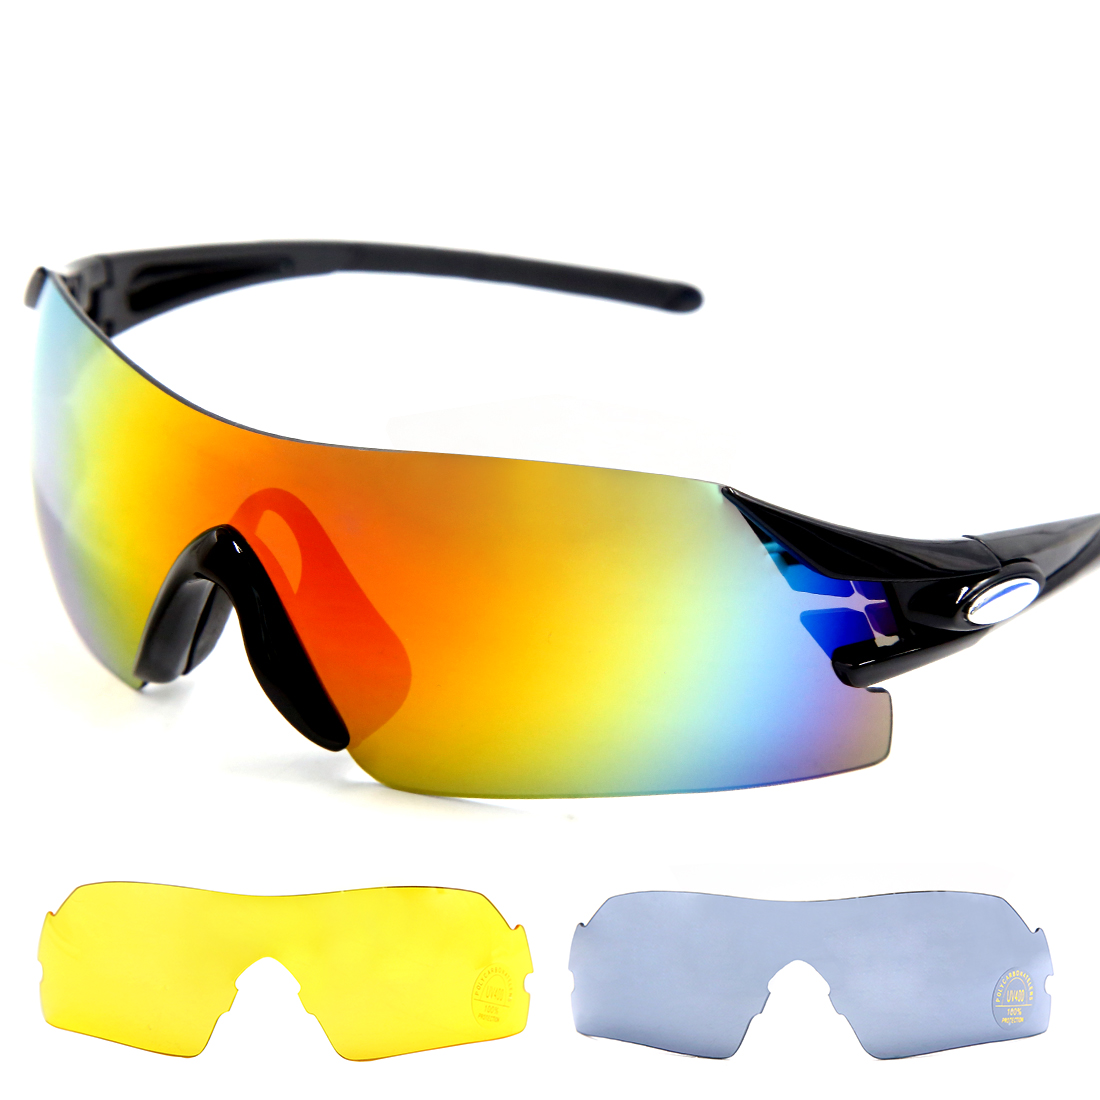 Bike Cycling Sunglasses 3 Interchangeable Lens Racing Running Sports Glasses Men Women Black